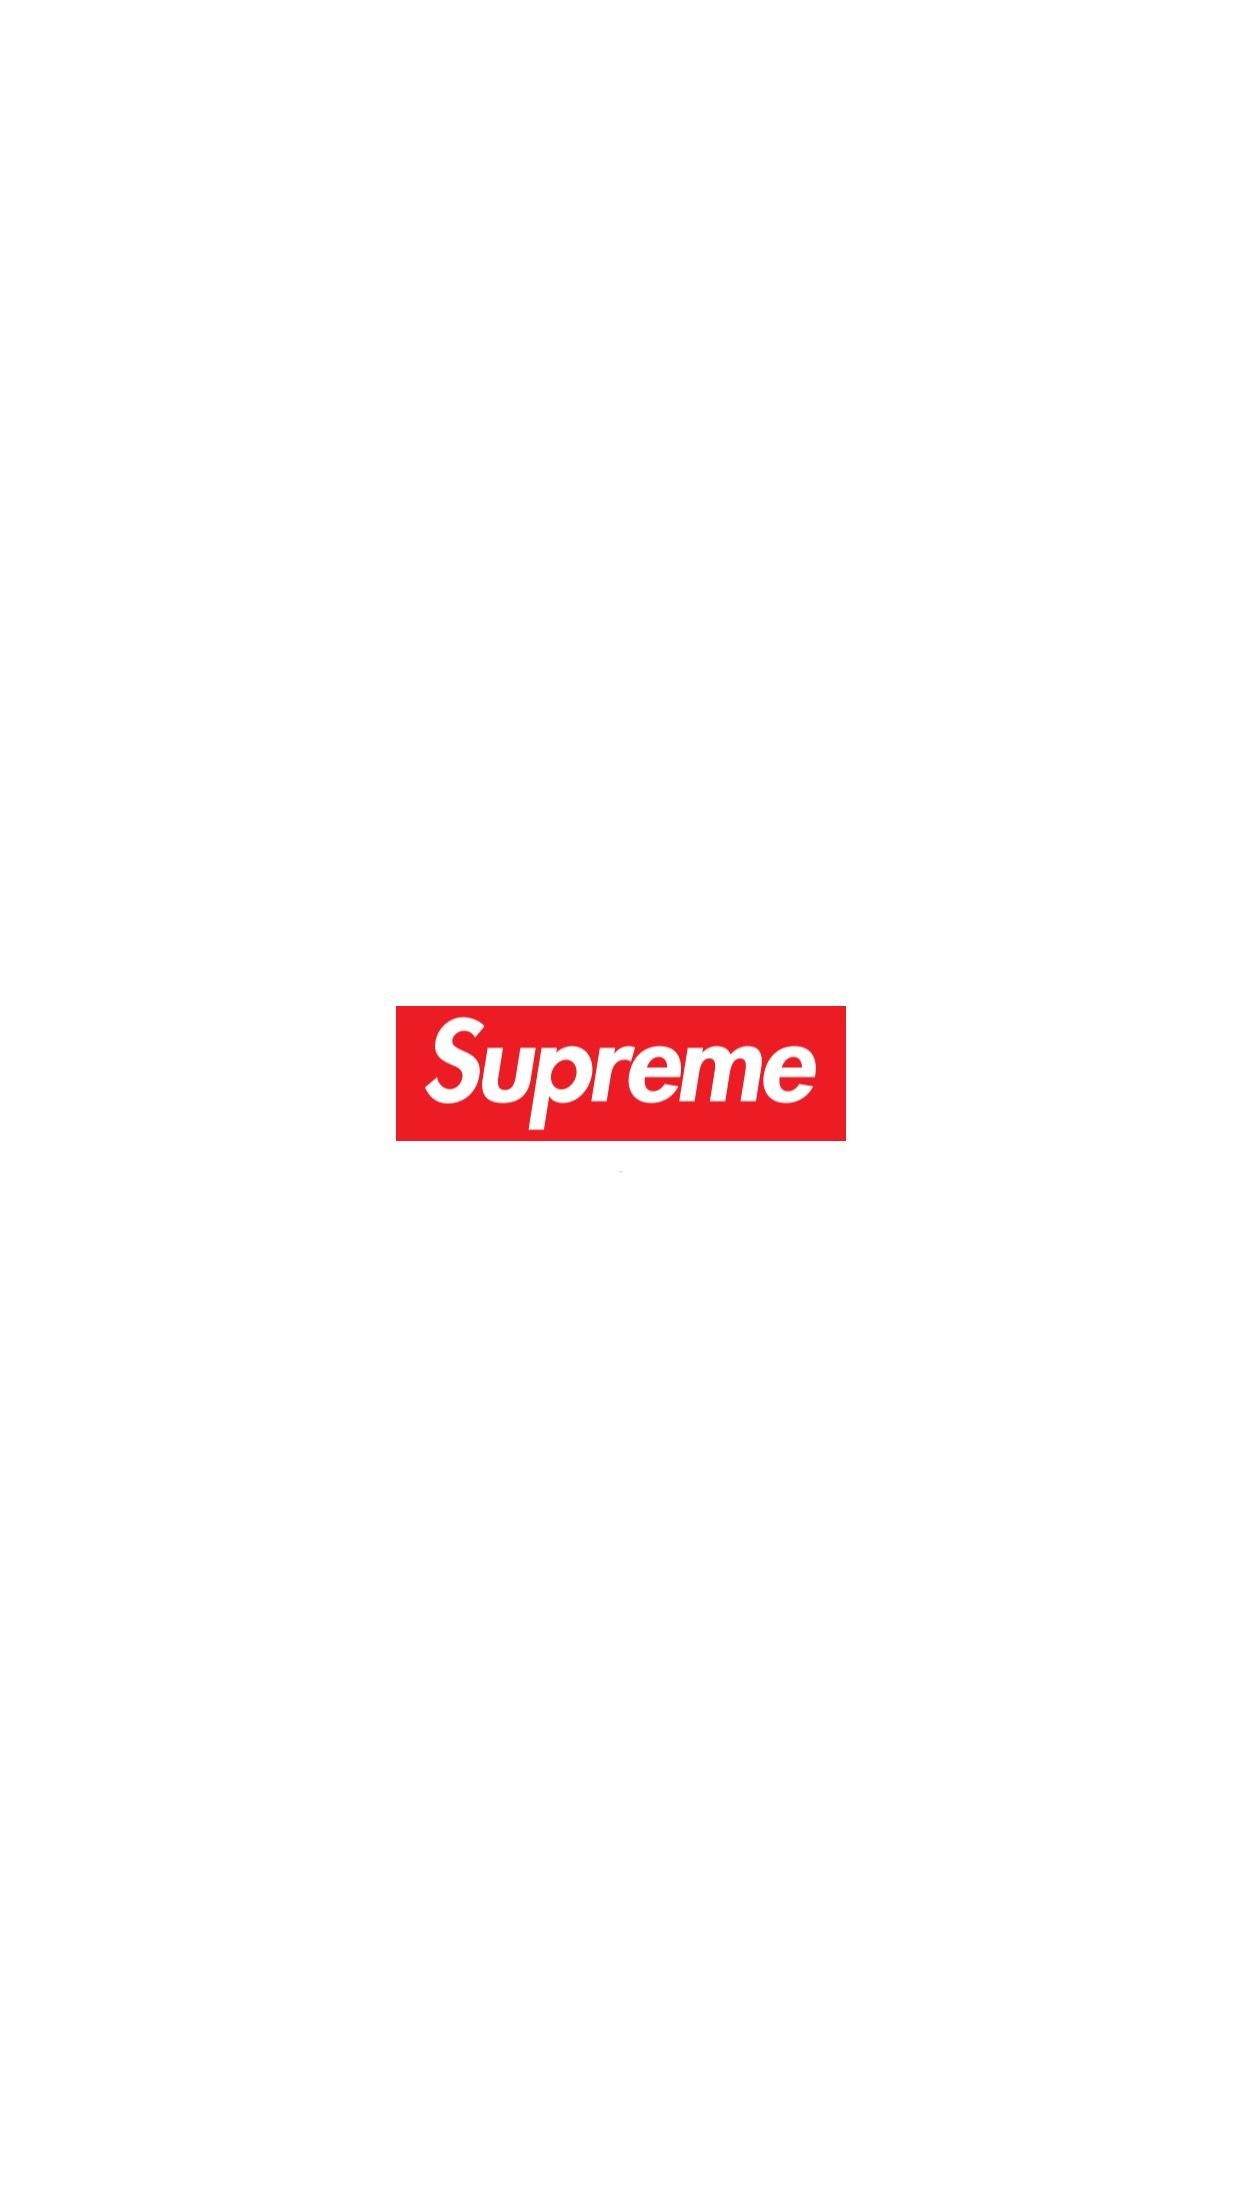 Supreme White Wallpaper : supreme, white, wallpaper, Supreme, White, IPhone, Wallpapers, Backgrounds, WallpaperAccess